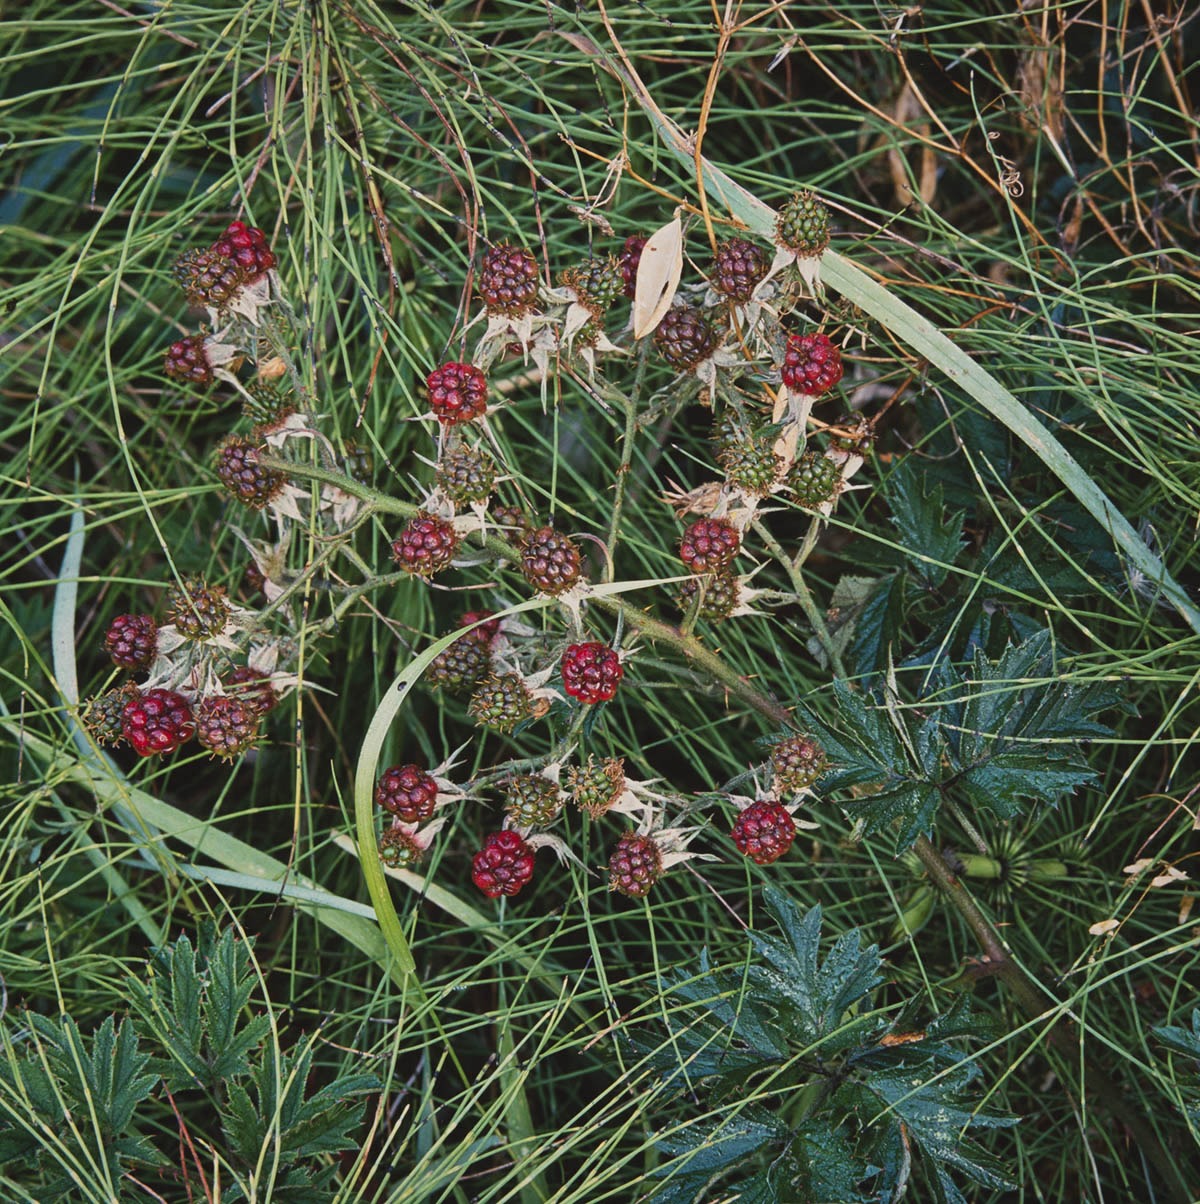 Wild Blackberries and Grass